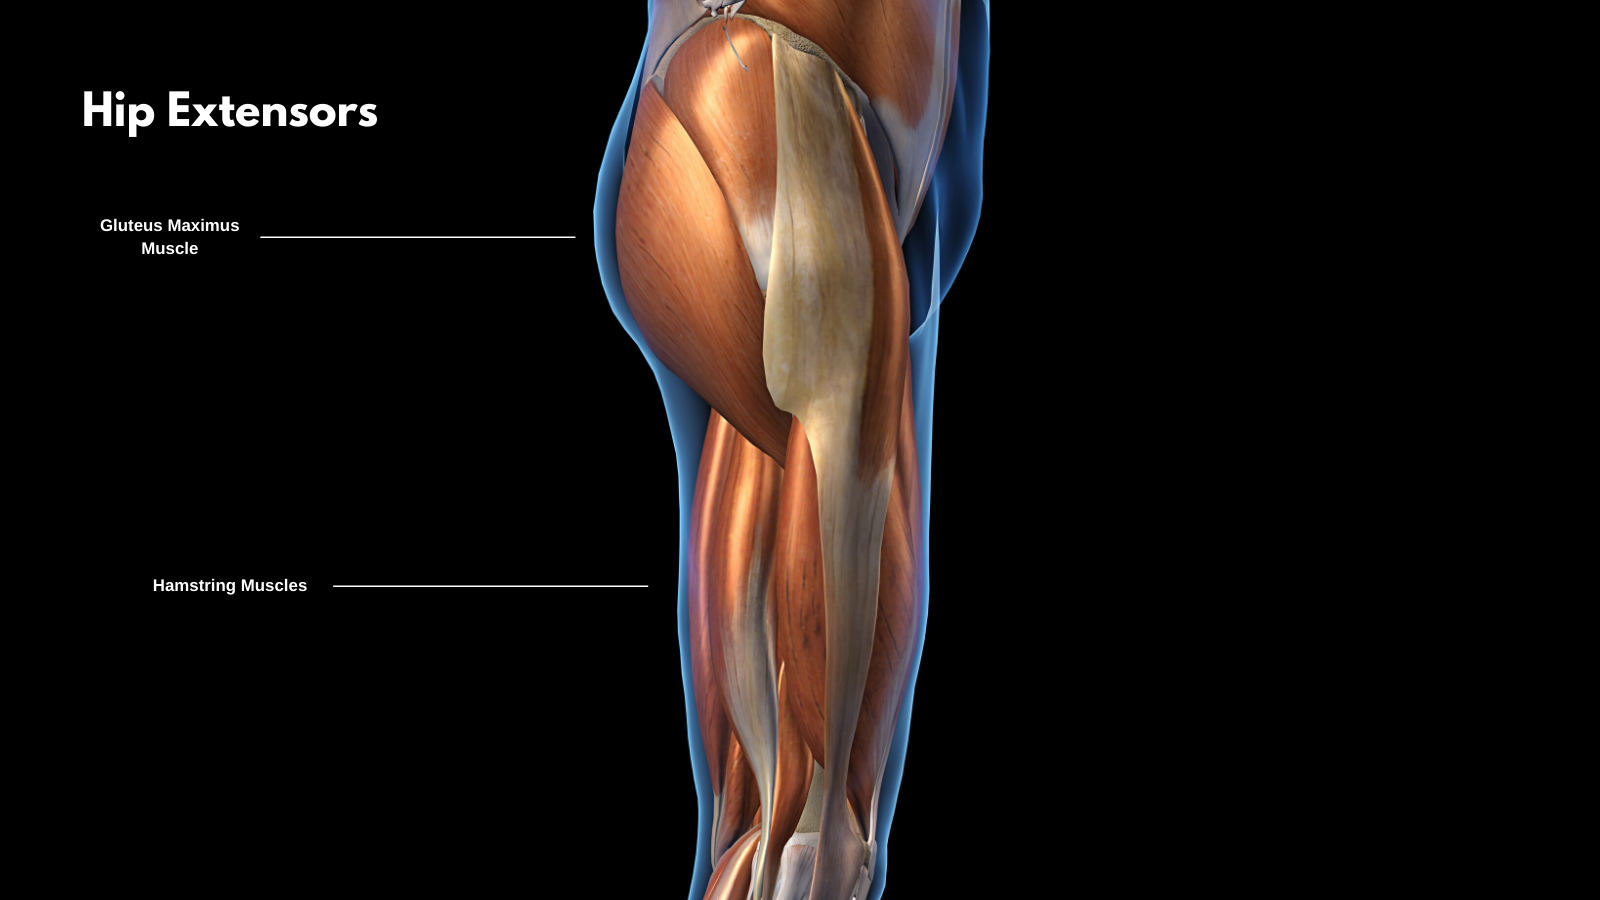 yoga anatomy - the hamstrings and glute muscles for hip extension and yoga backbends